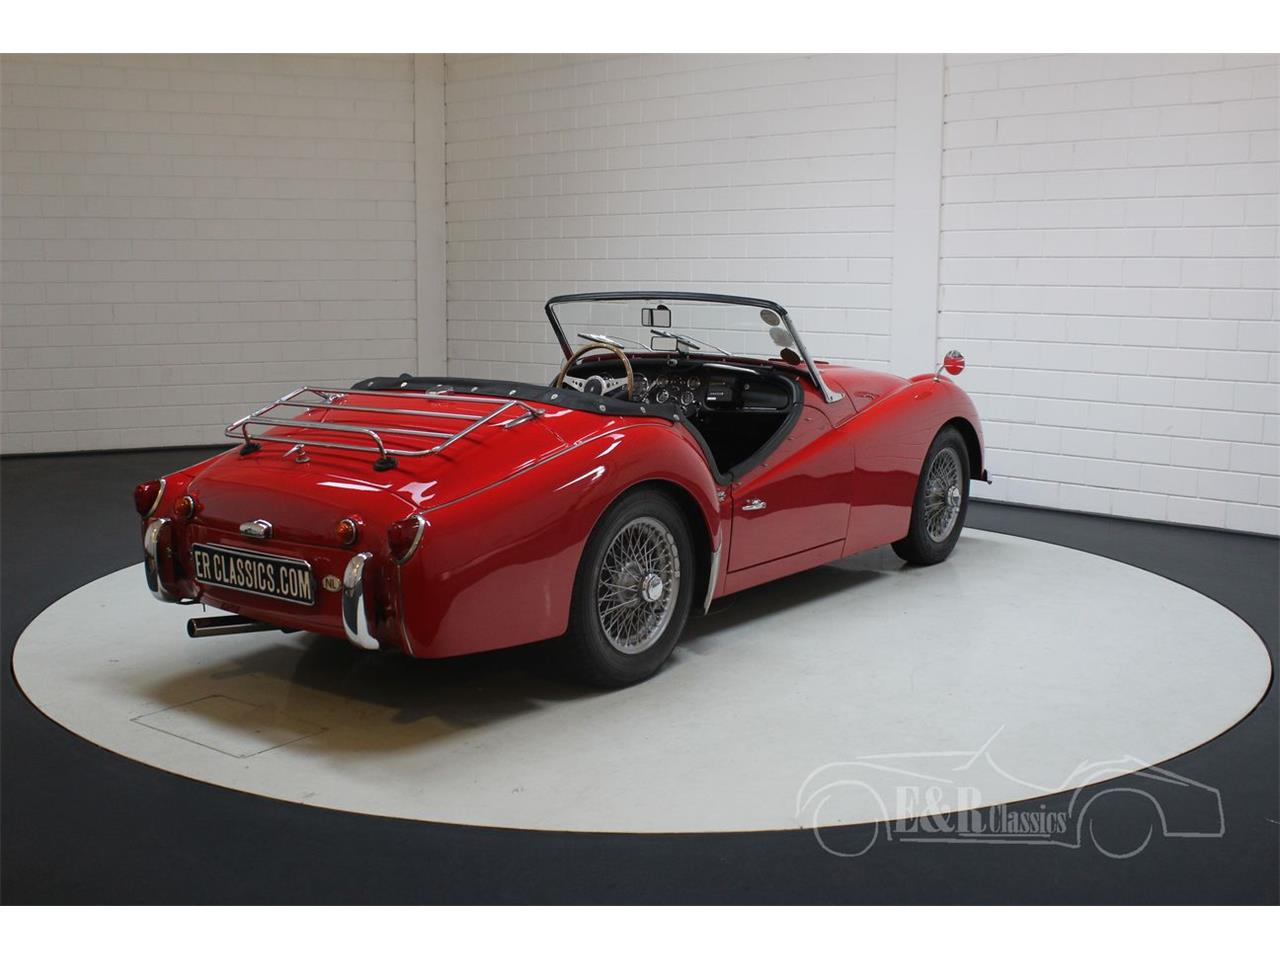 Large Picture of Classic 1960 TR3A located in Noord-Brabant - $41,800.00 Offered by E & R Classics - PLXB